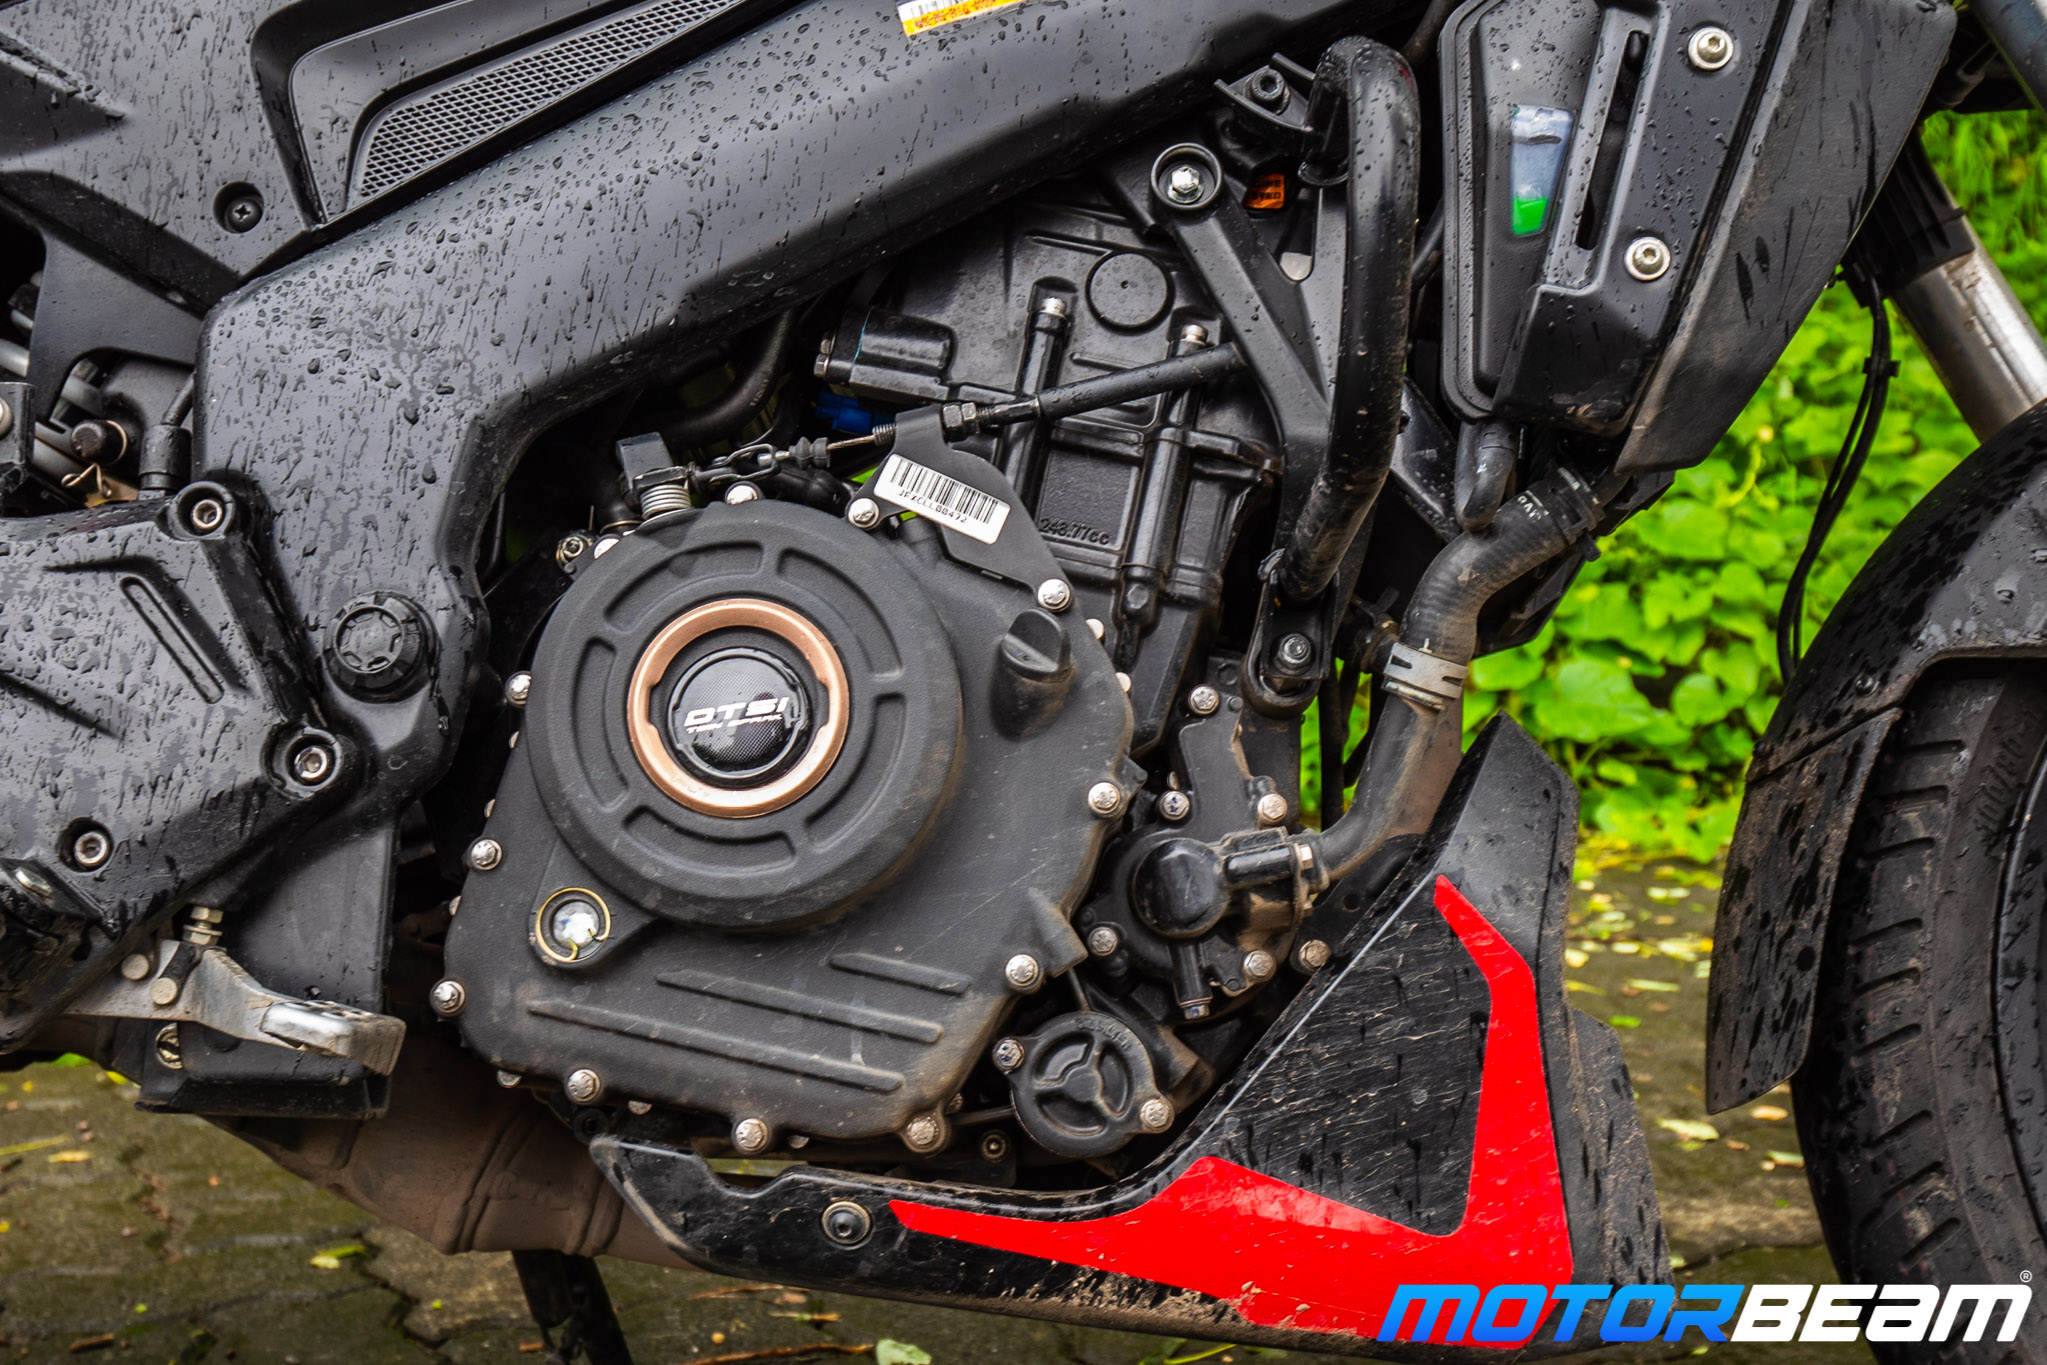 Bajaj Dominar 250 Review Engine